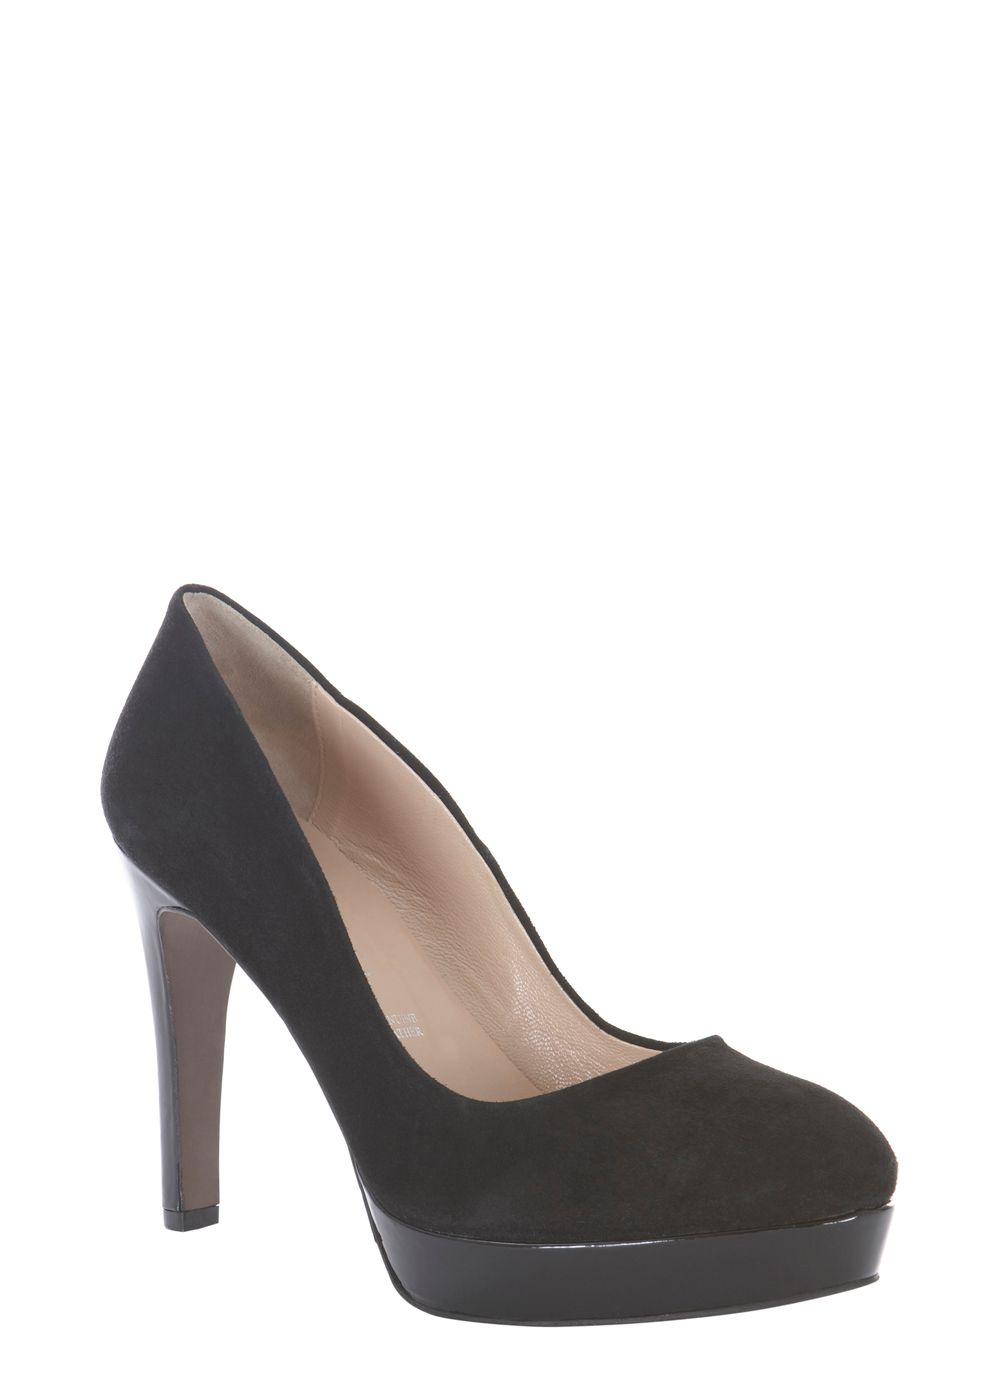 Black suede court shoes